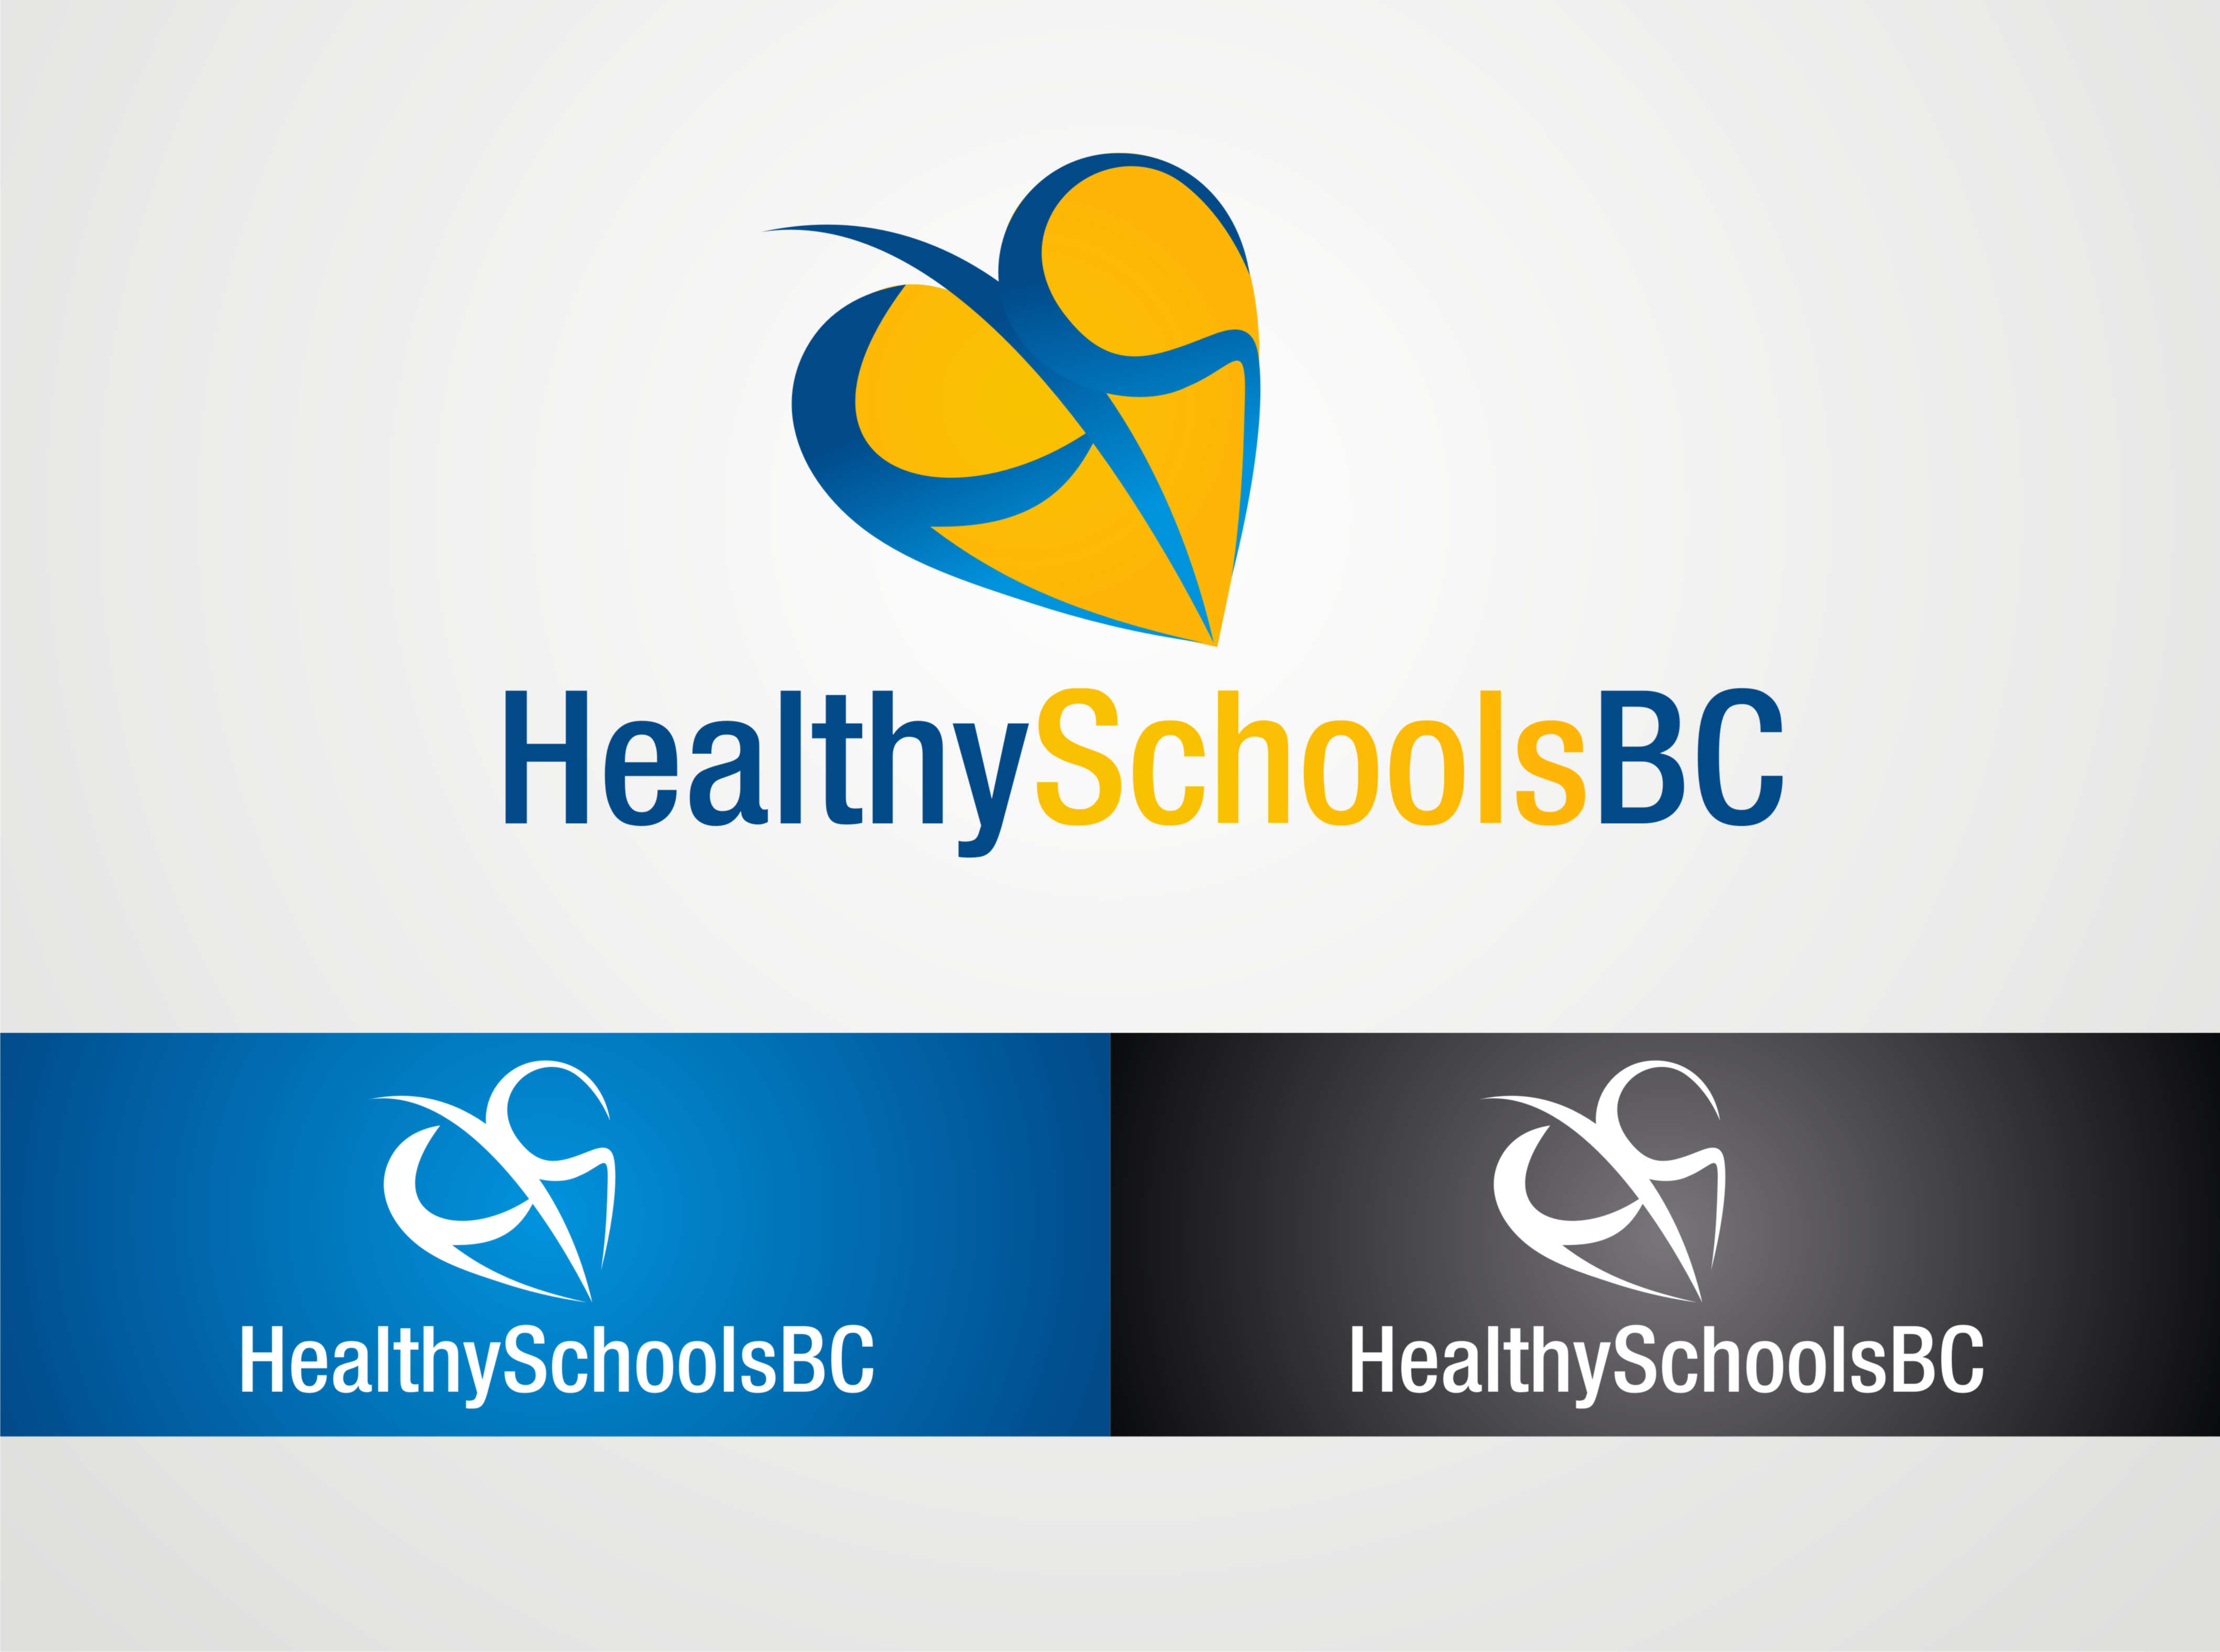 Logo Design by Suroso Tansaliman - Entry No. 192 in the Logo Design Contest SImple, Creative and Clean Logo Design for Healthy Schools British Columbia, Canada.